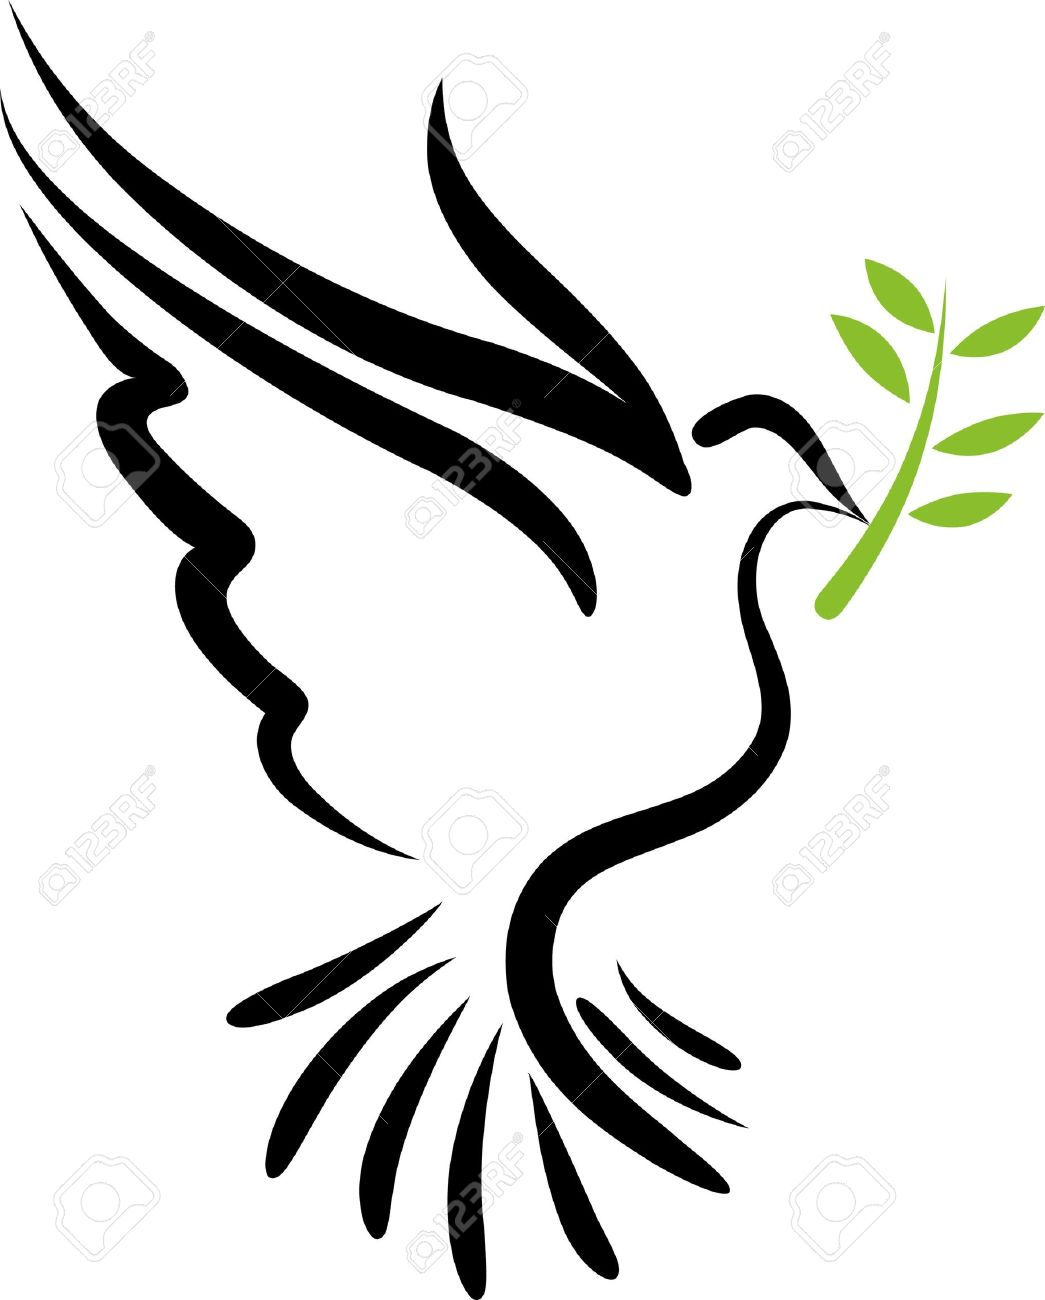 Global Federation International News Network! - Page 5 7977946-A-free-flying-white-dove-symbol--Stock-Vector-dove-peace-holy